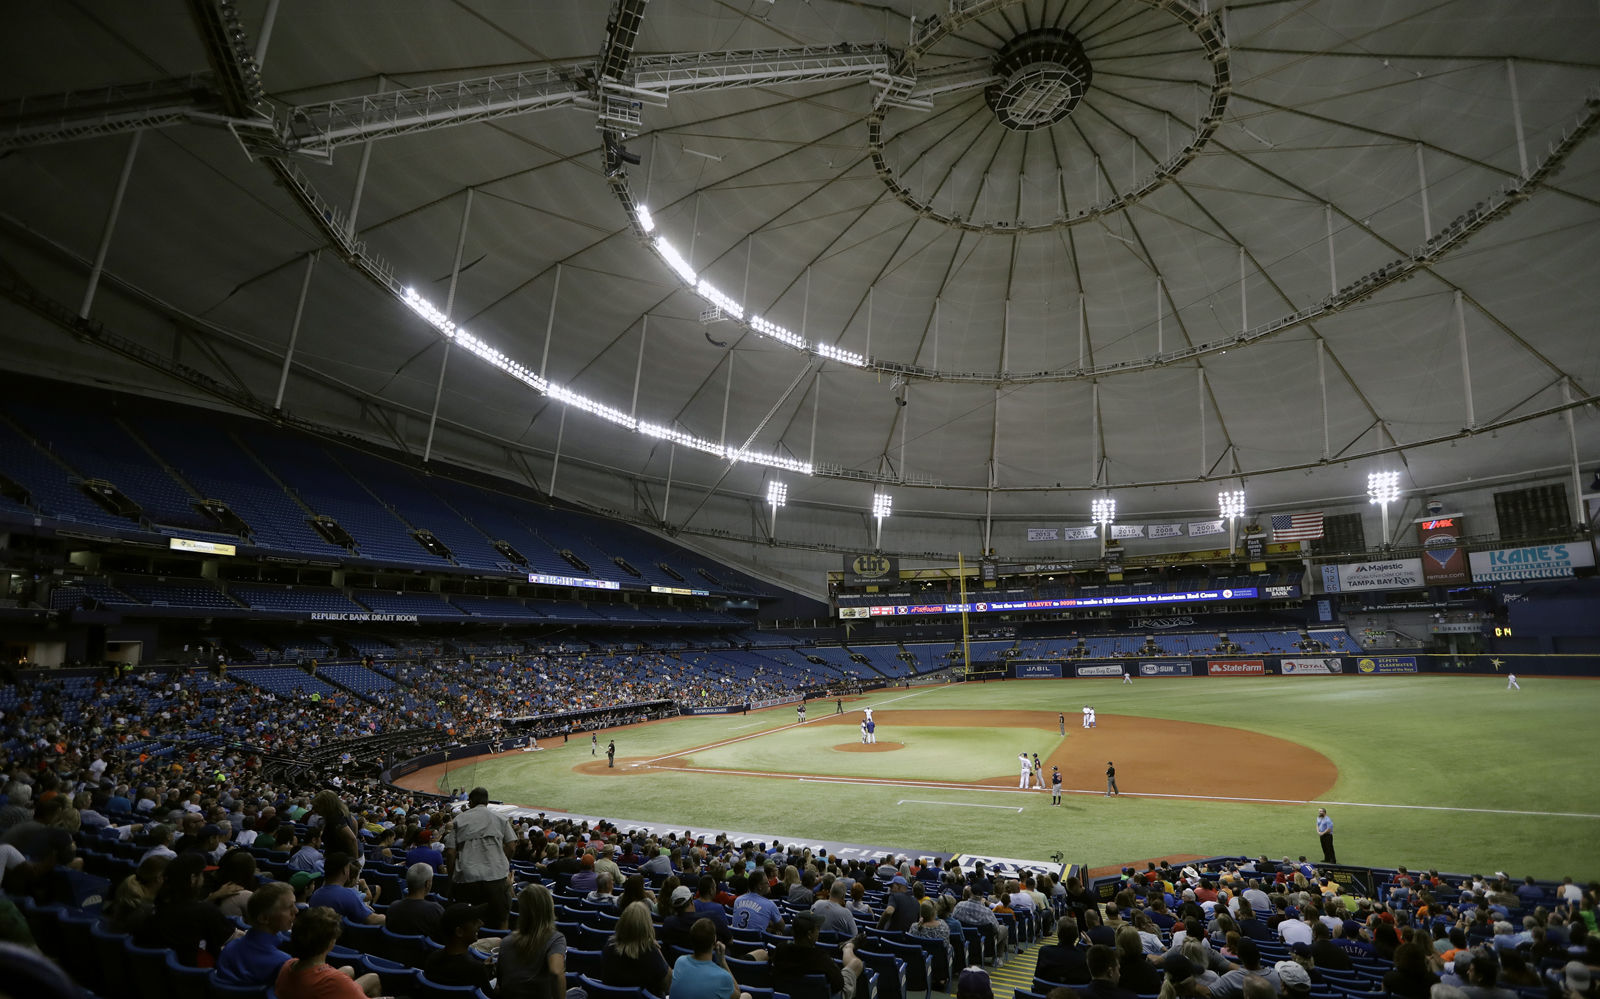 One of the last domed stadiums left in baseball, Tropicana Field, the home of the Tampa Bay Rays is No. 16 on the list with the average cost at $70. One big benefit of the Trop is that parking is free. File. (AP Photo/Chris O'Meara)